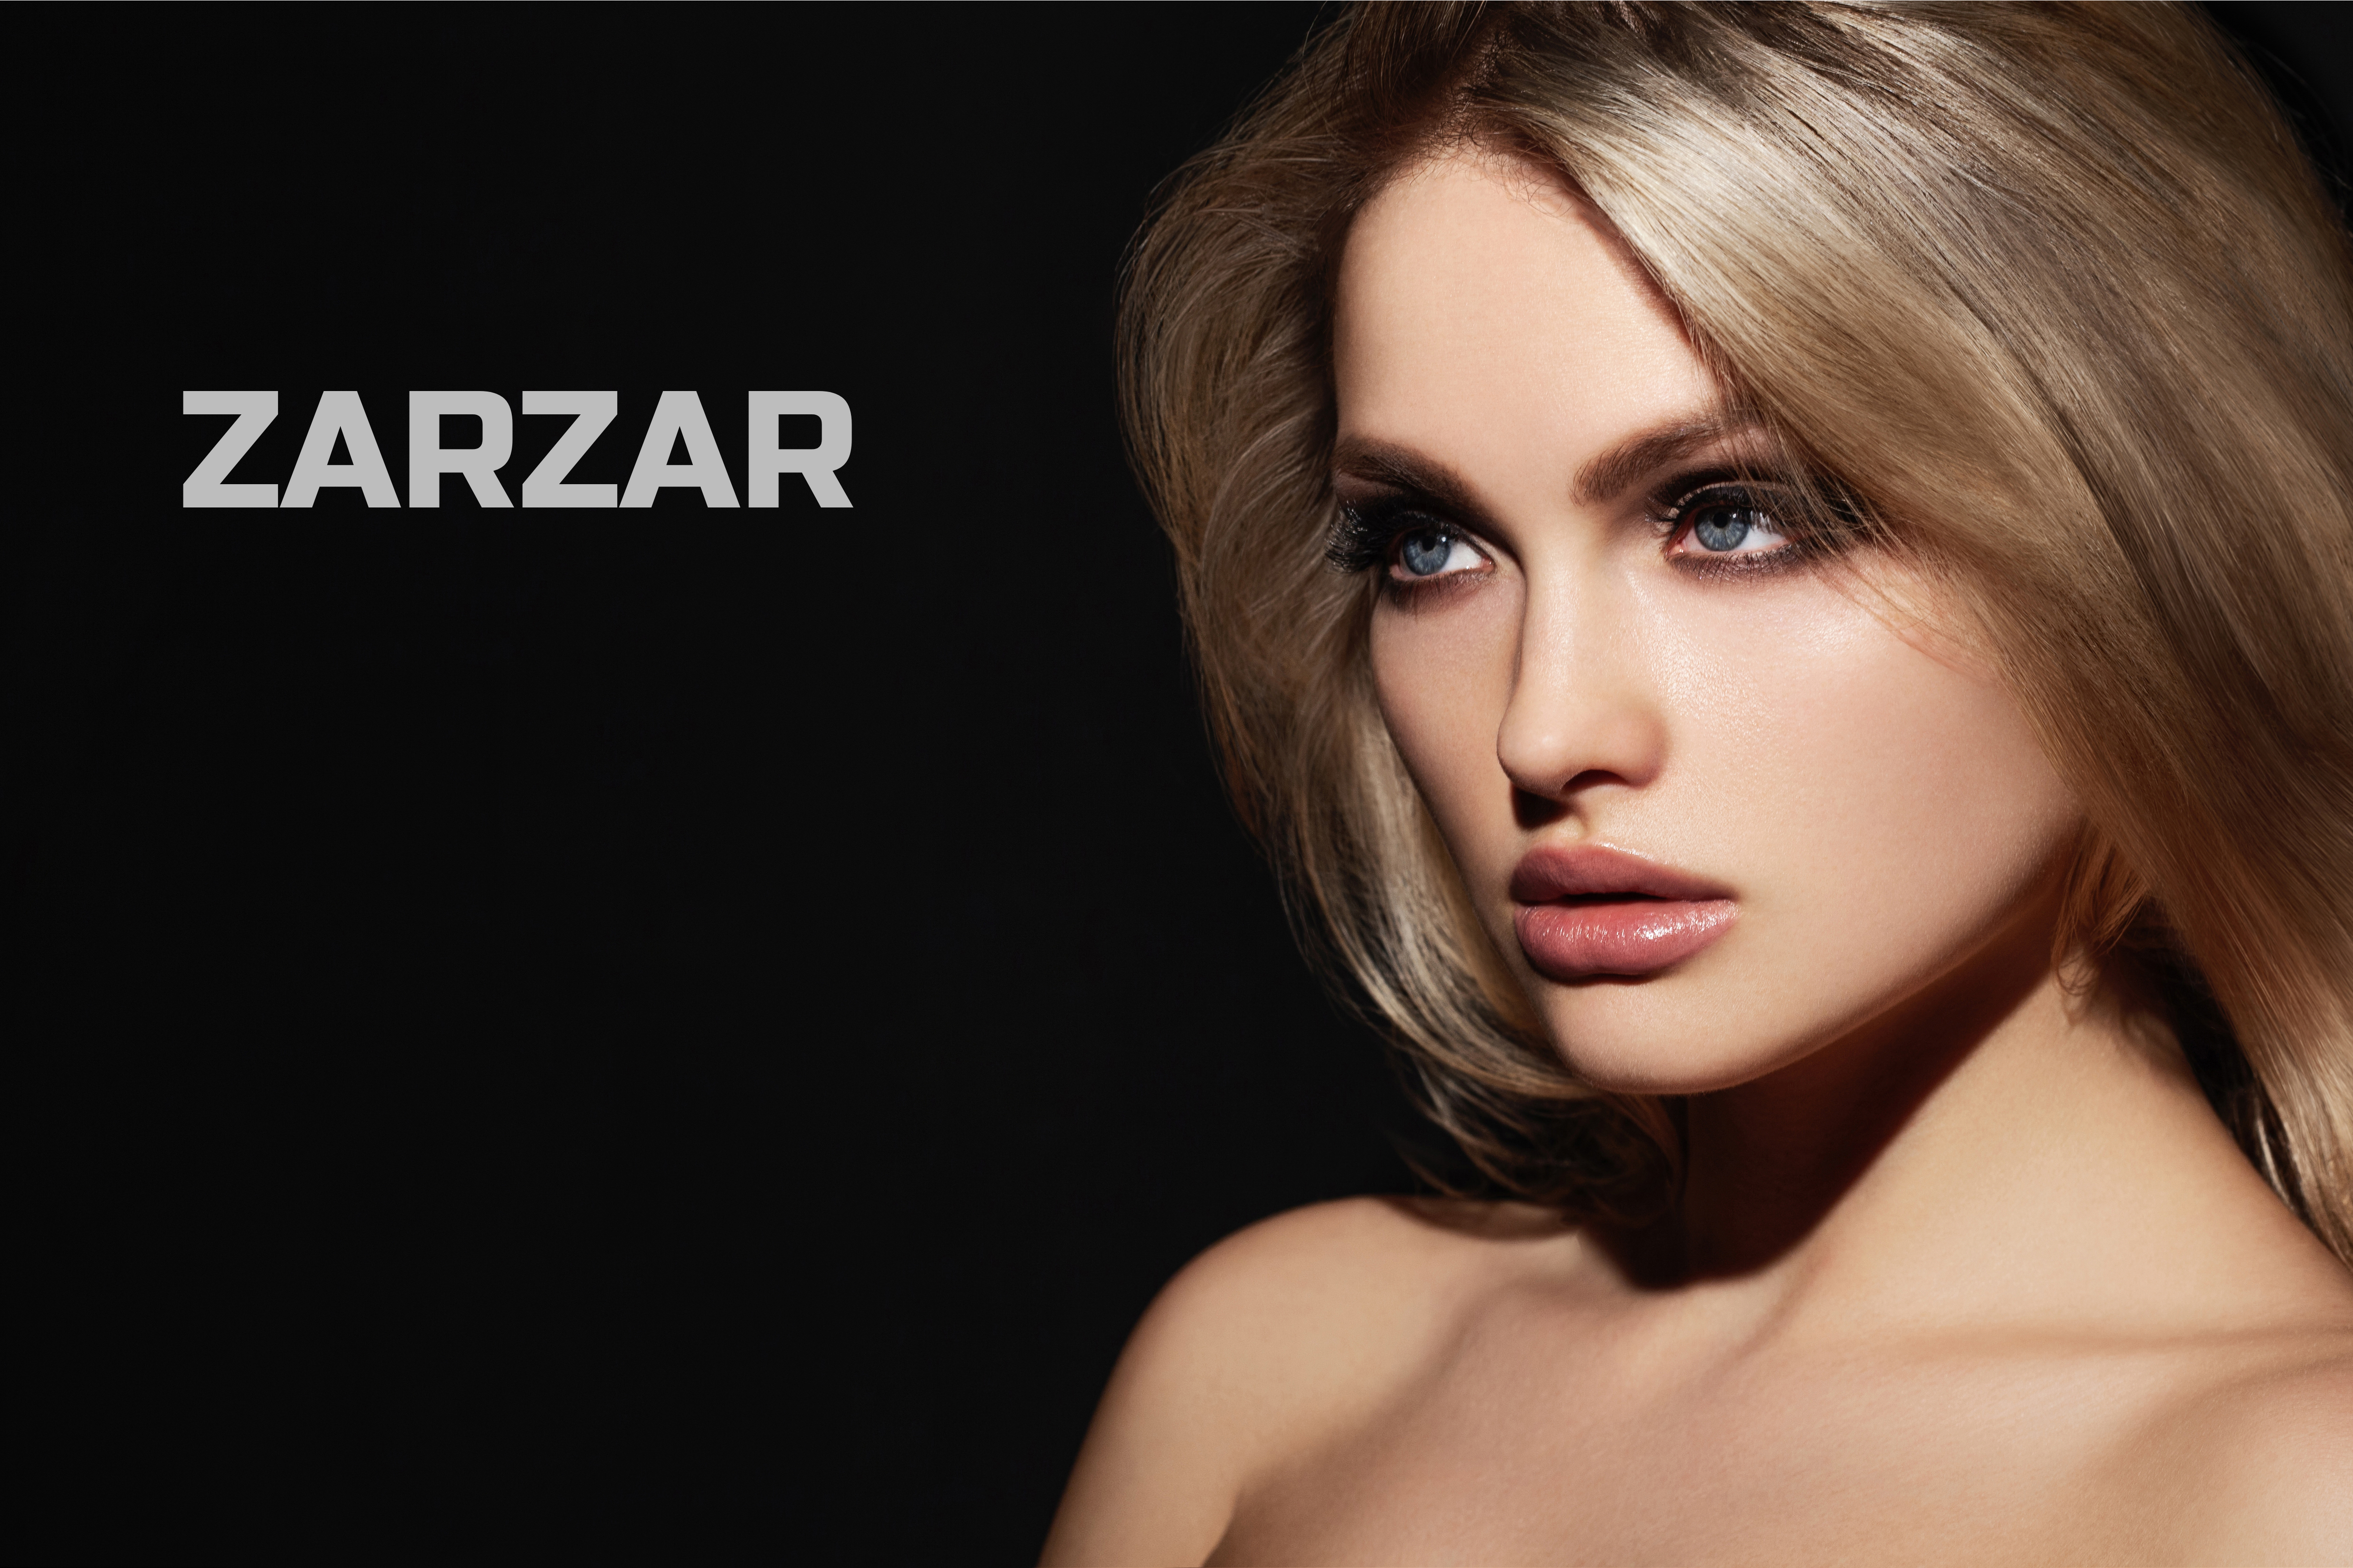 ZARZAR MODELS Beauty & Makeup Models. Top Modeling Agencies In Los Angeles, San Diego, Las Vegas, Miami, & New York For Beautiful Fashion Models.